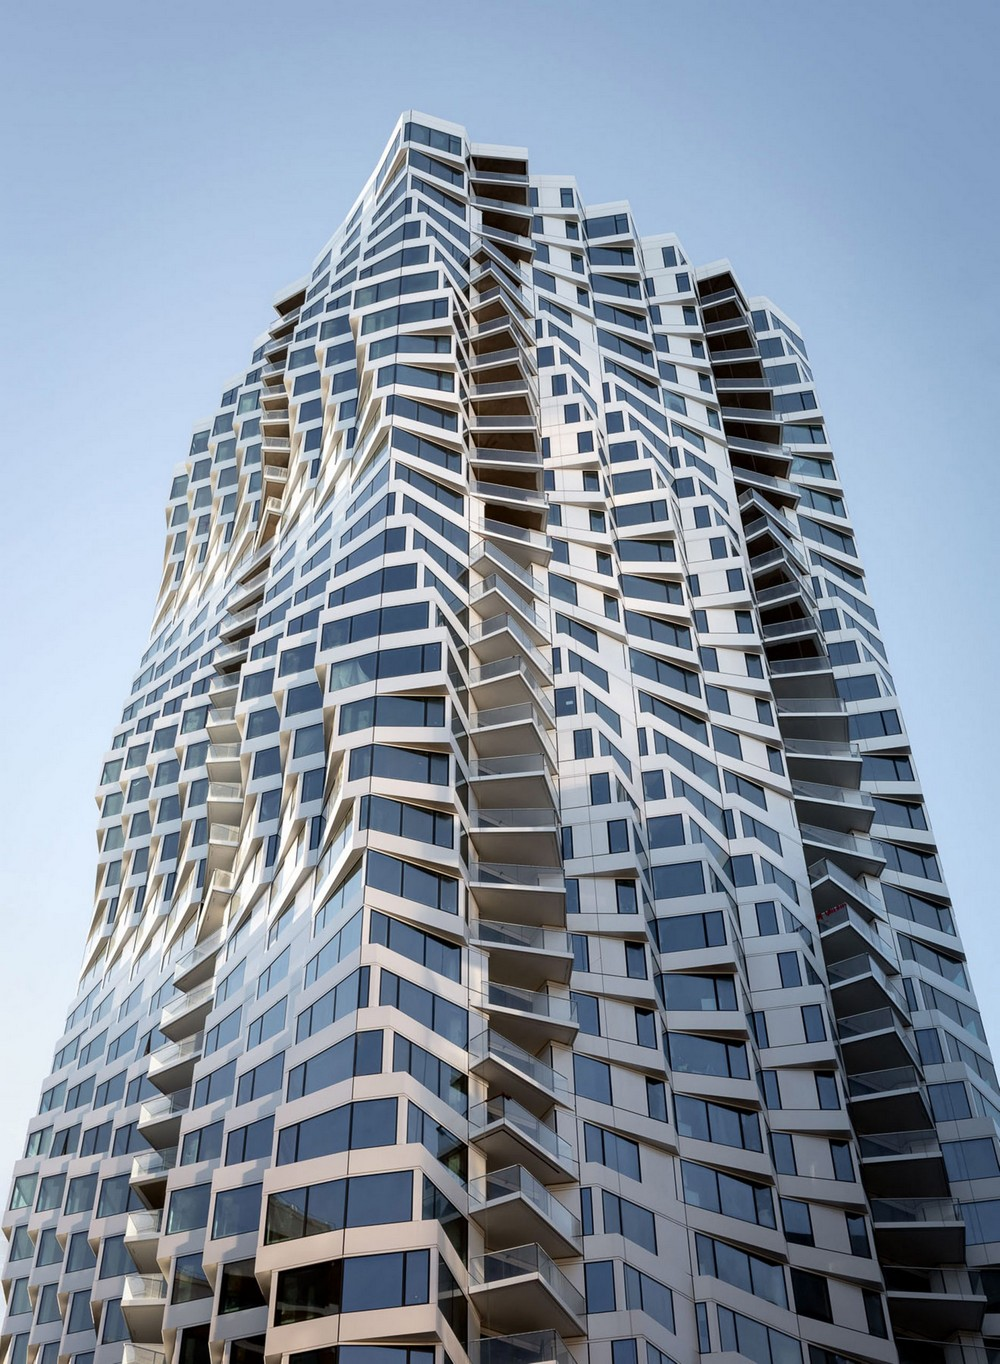 Architecture News Mira Residential Building in SF by Studio Gang_2 architecture news Architecture News: Mira Residential Building in SF by Studio Gang Architecture News Mira Residential Building in SF by Studio Gang 2